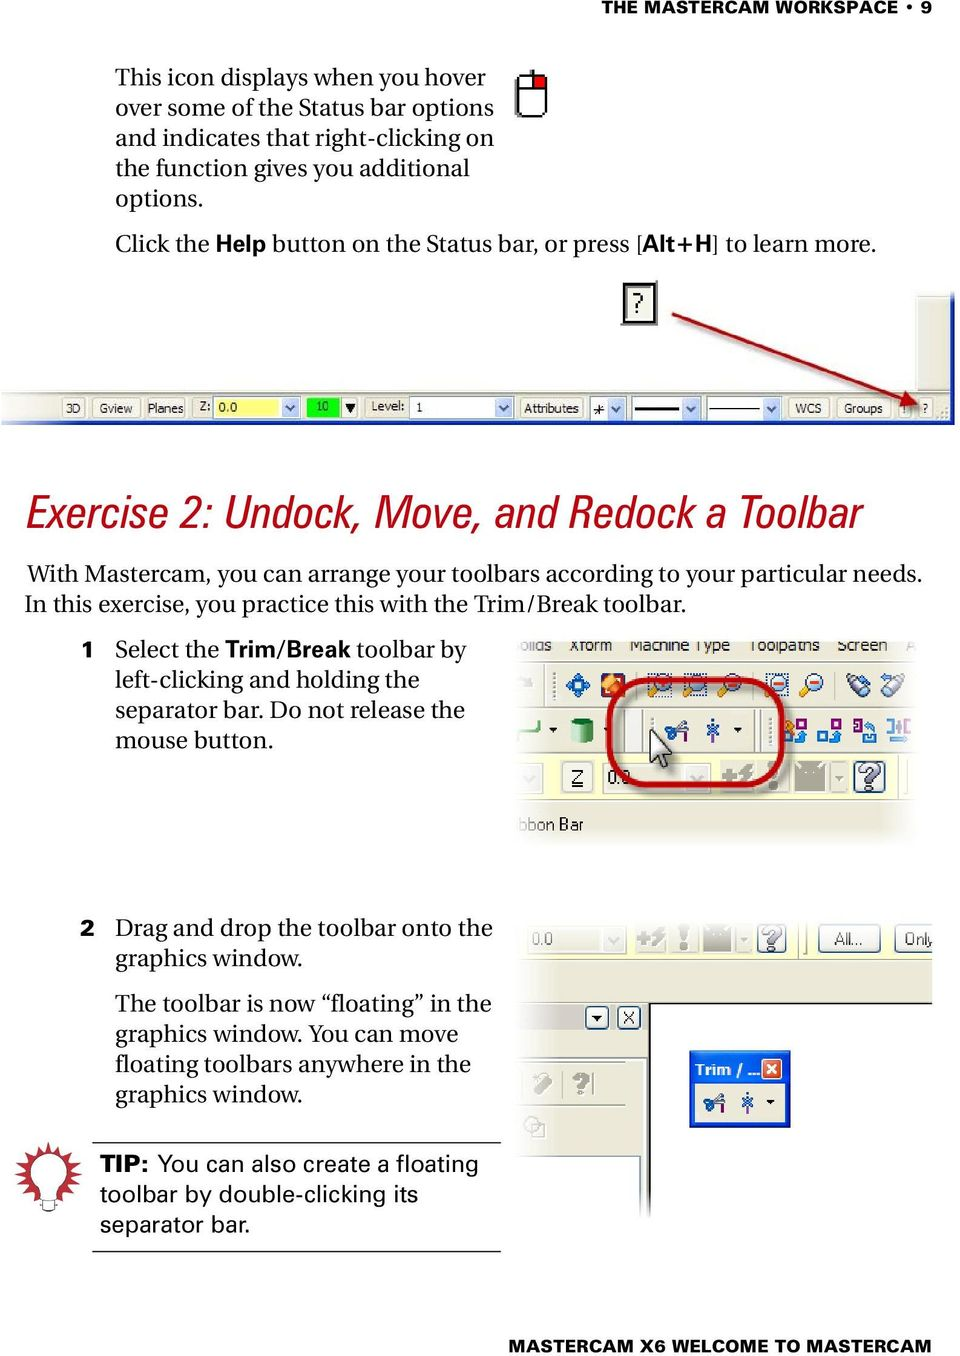 Exercise 2: Undock, Move, and Redock a Toolbar With Mastercam, you can arrange your toolbars according to your particular needs. In this exercise, you practice this with the Trim/Break toolbar.